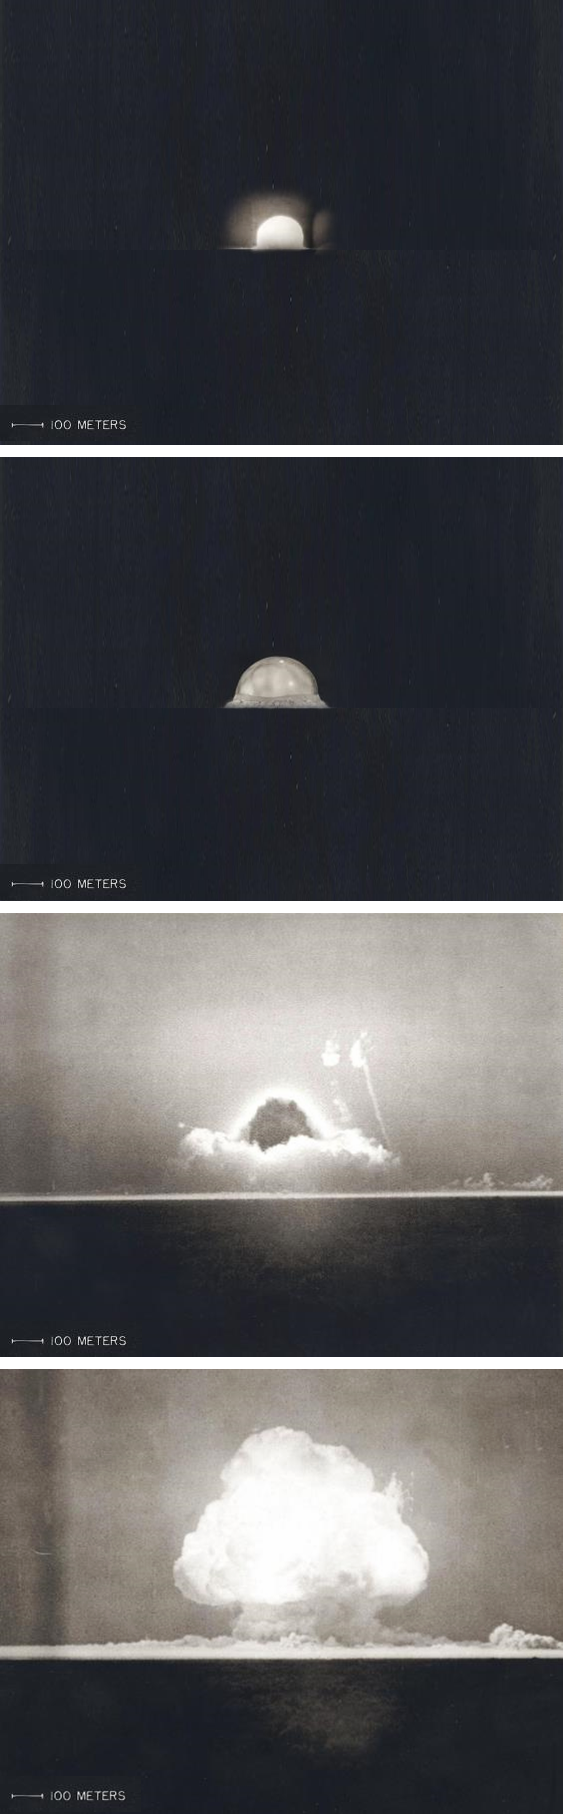 Photos from the first nine seconds following the Trinity detonation, arranged to scale